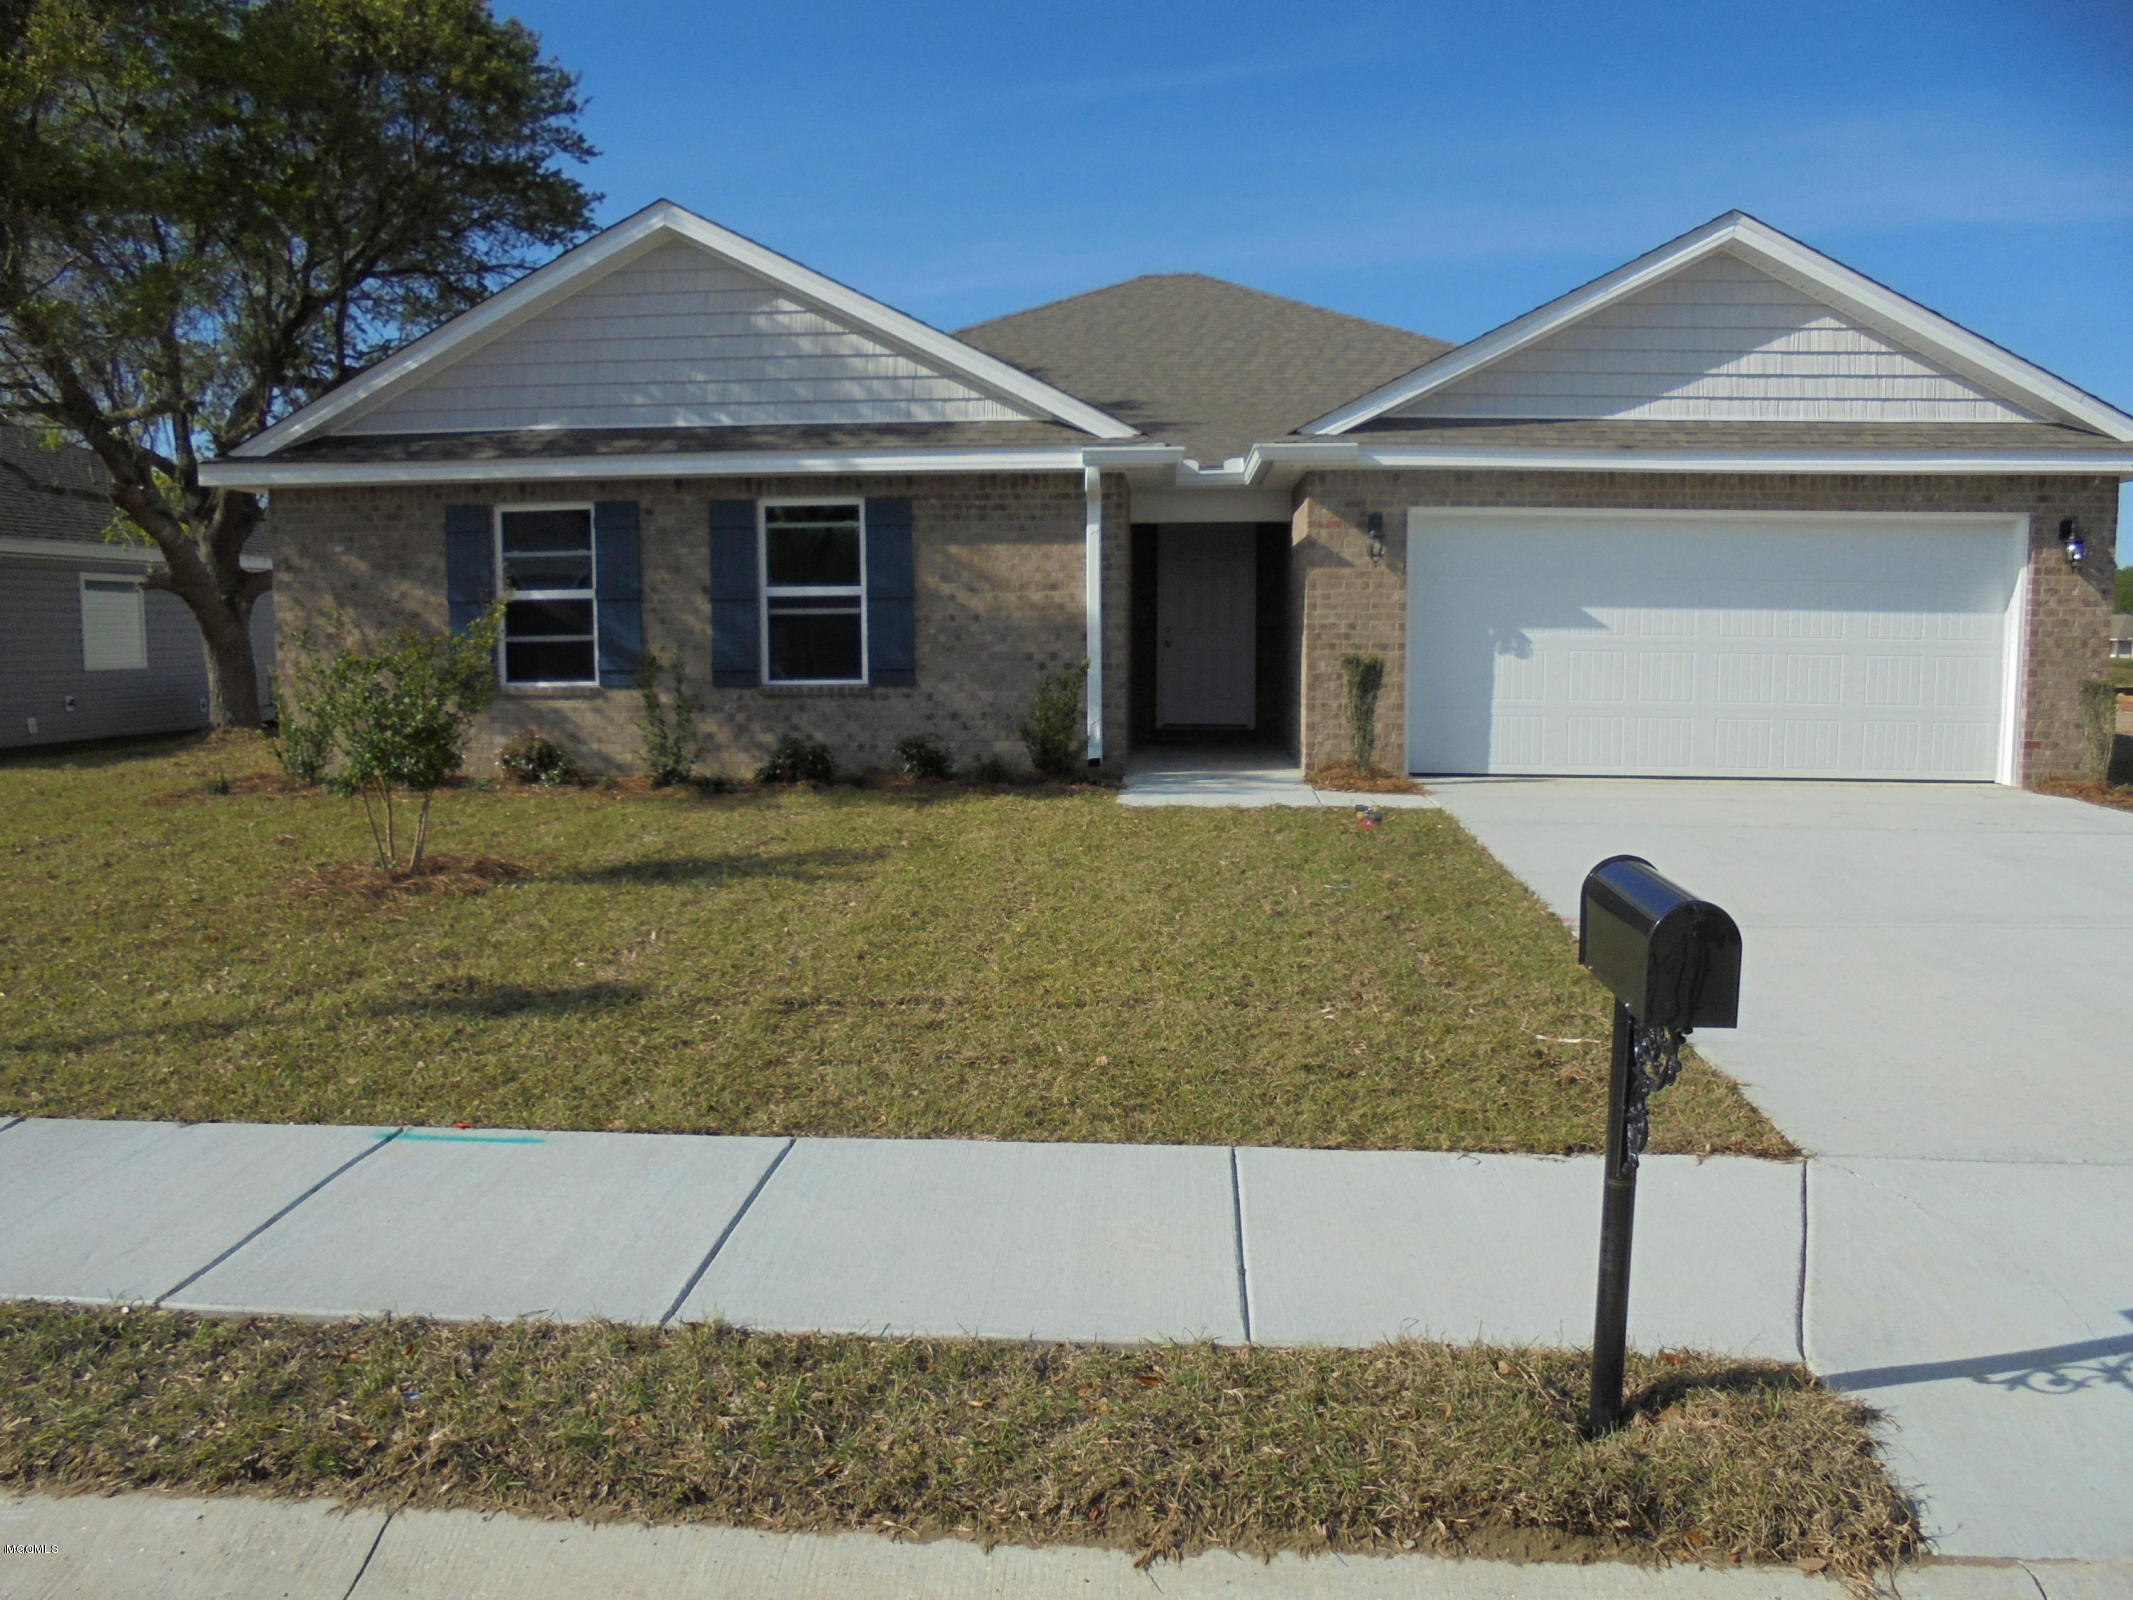 212 Lantana Blvd, Long Beach, Mississippi 39560, 4 Bedrooms Bedrooms, ,2 BathroomsBathrooms,Single-family,For Sale,Lantana,341161